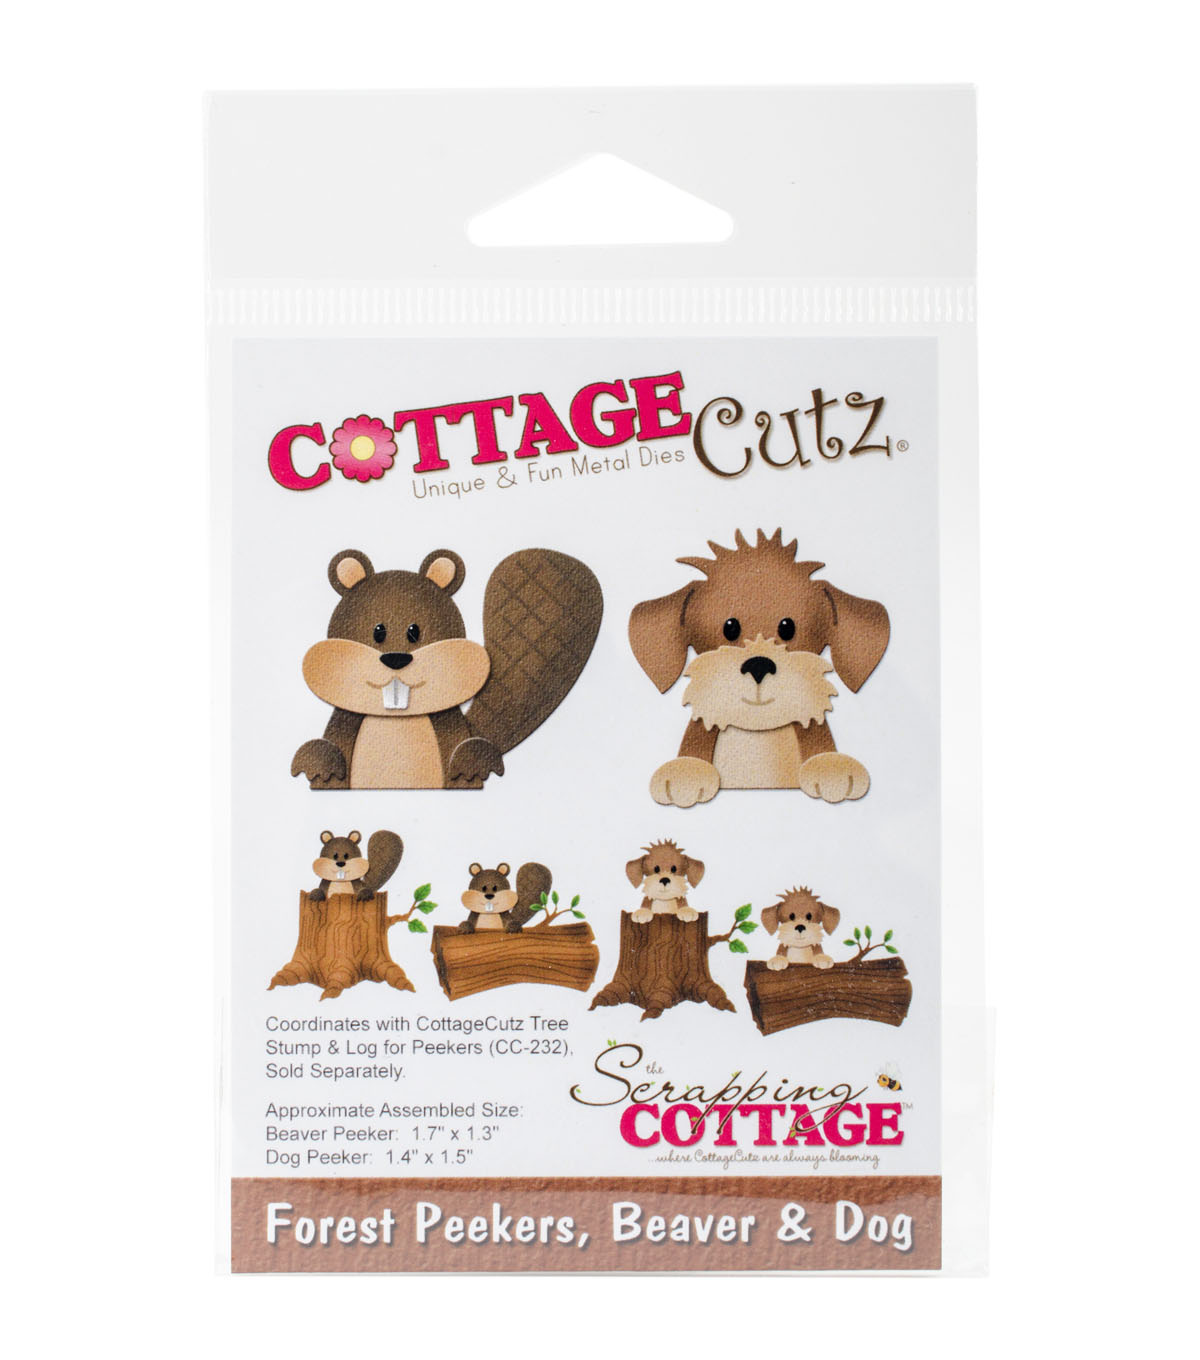 The Scrapping Cottage CottageCutz Dies-Forest Peekers, Beaver & Dog